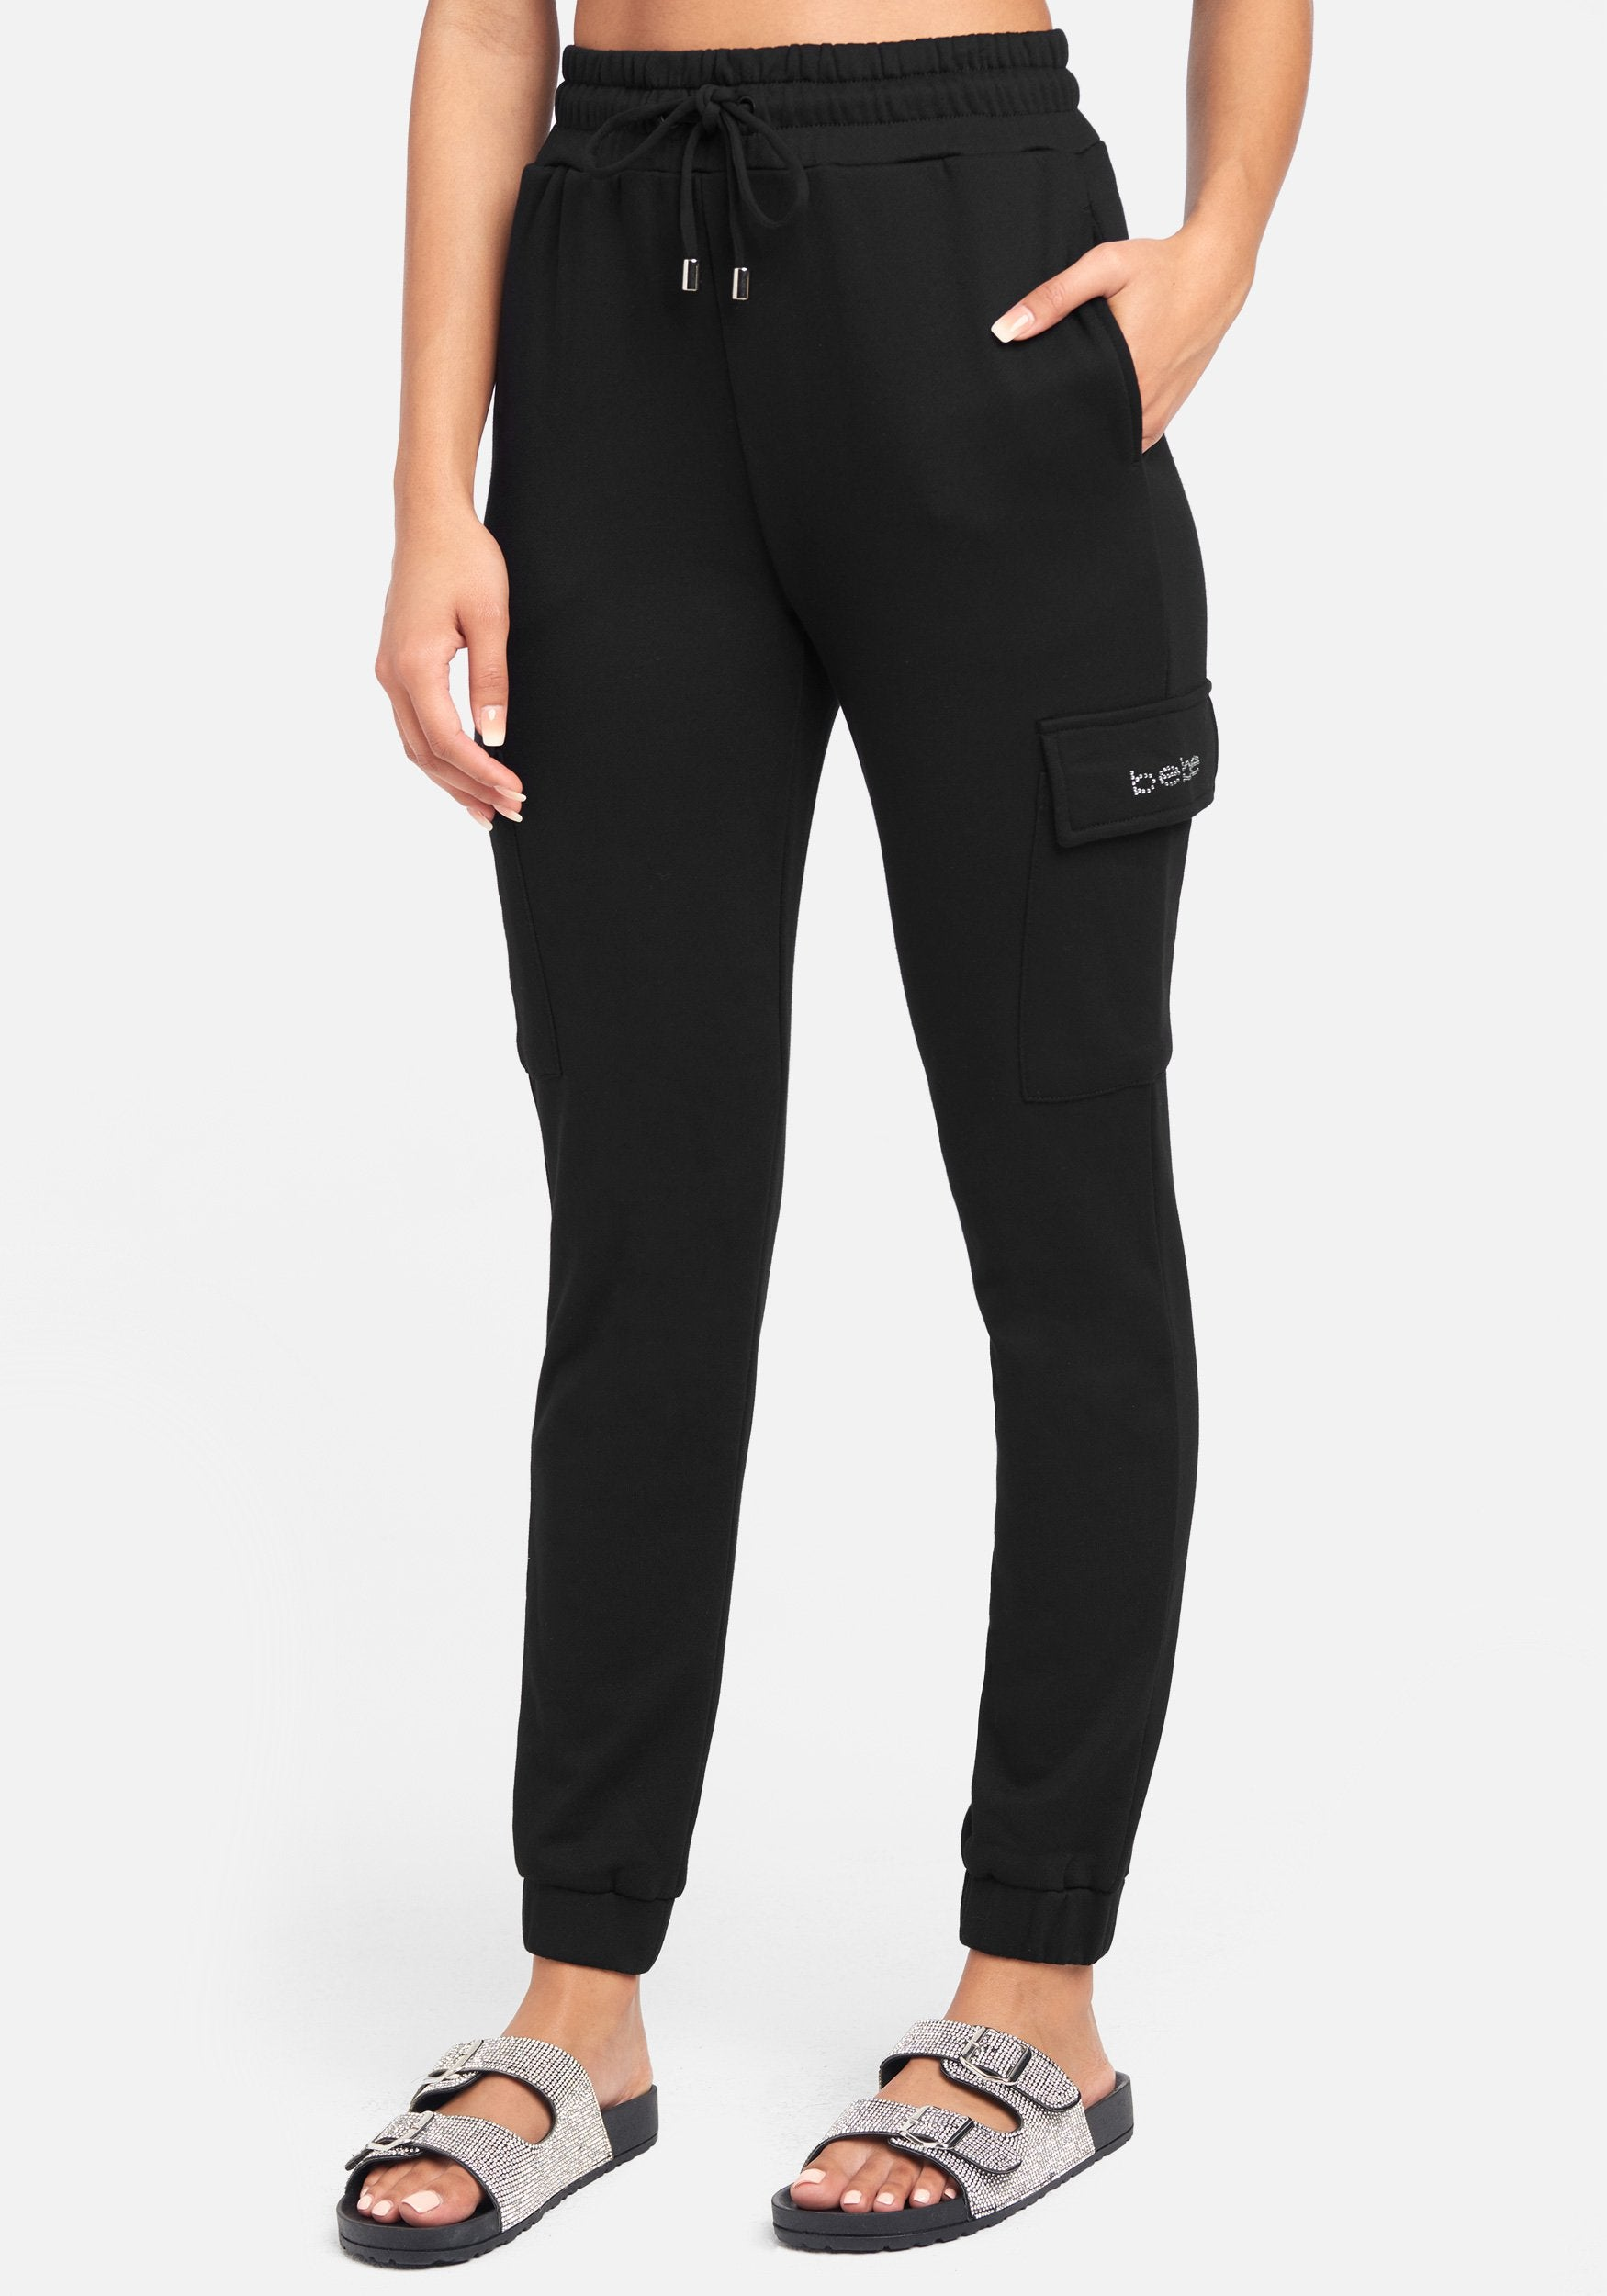 Women's Bebe Logo French Terry Cargo Pant, Size XS in Black Spandex